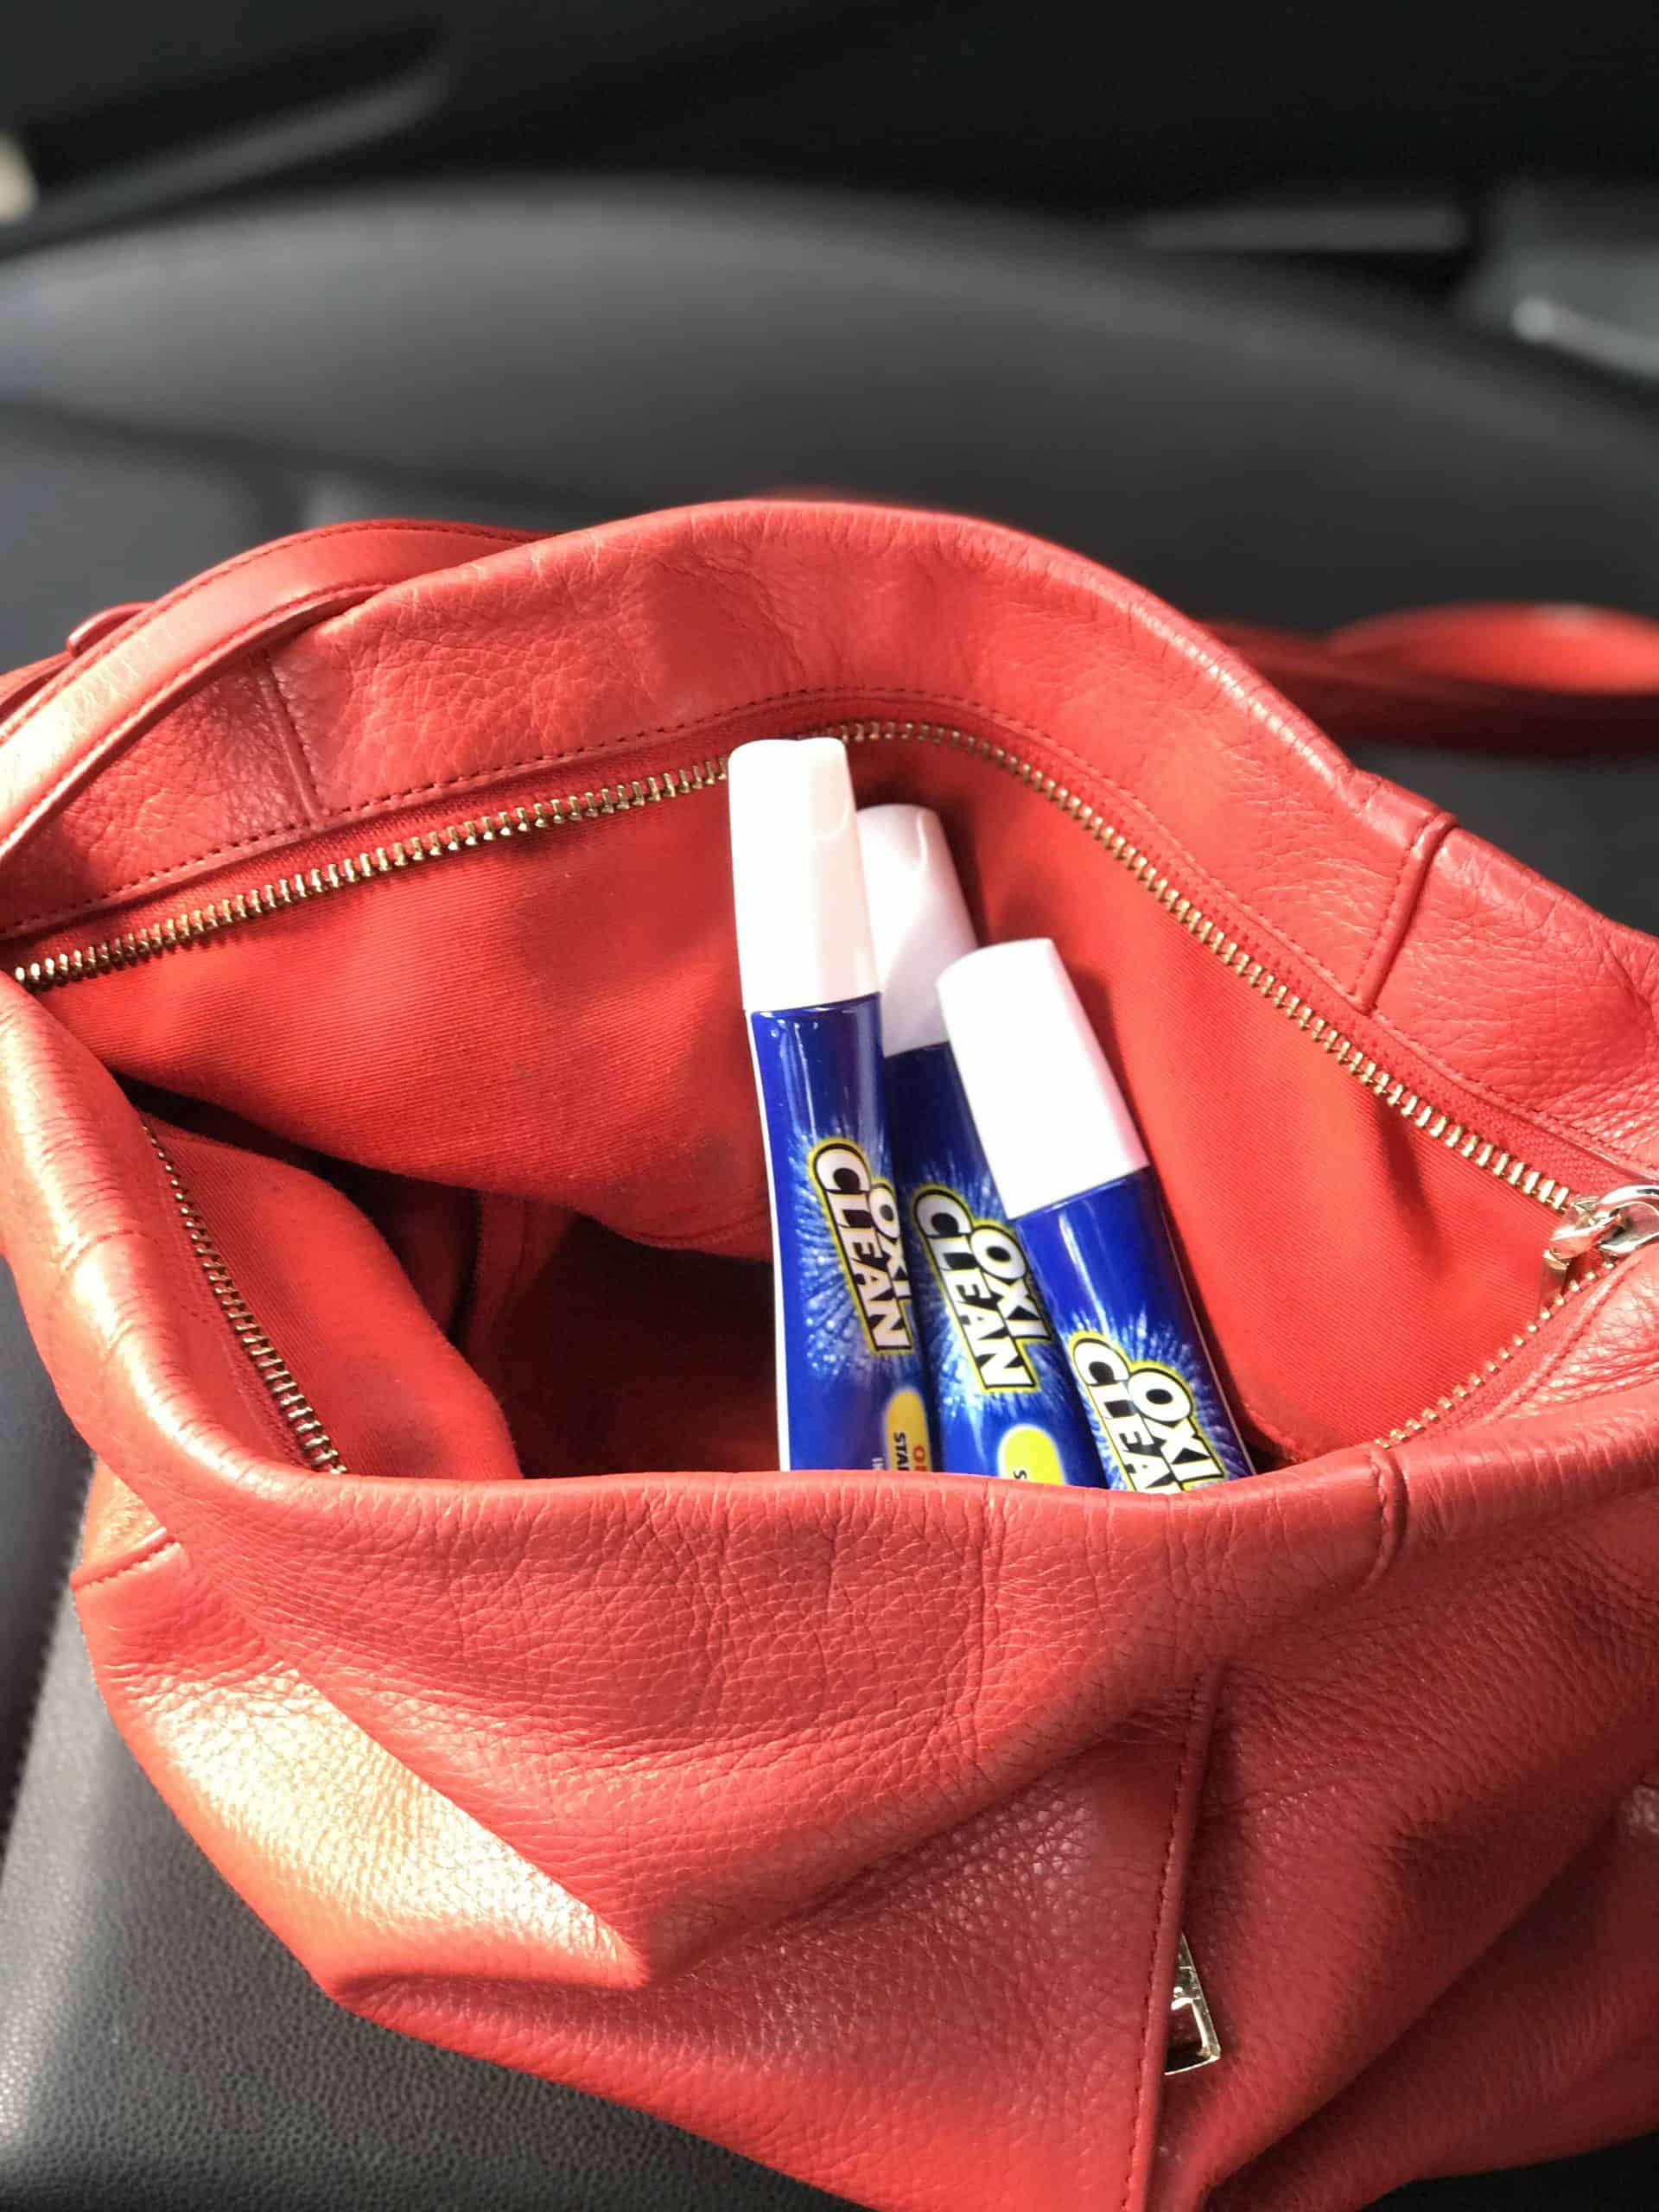 oxiclean stain remover pen